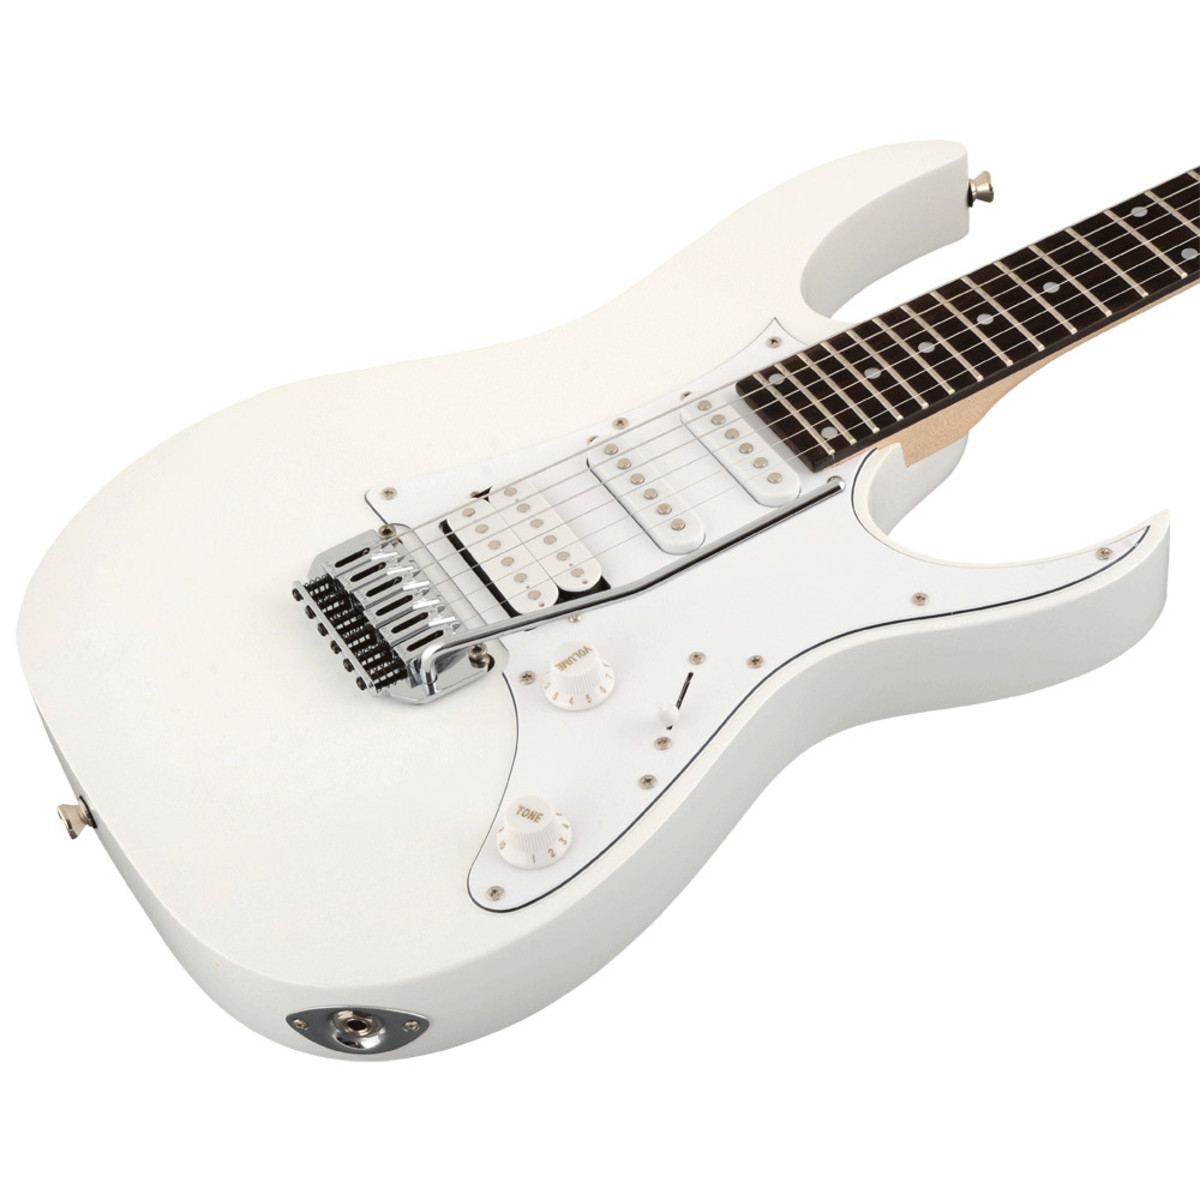 Pretty Pit Bike Wiring Thin 2 Humbuckers In Series Clean One Humbucker One Volume Wiring Remote Start Alarm Installation Youthful 3 Pickup Guitar BlackWiring 1 2 3 Ibanez GRG140 GIO, White At Gear4music